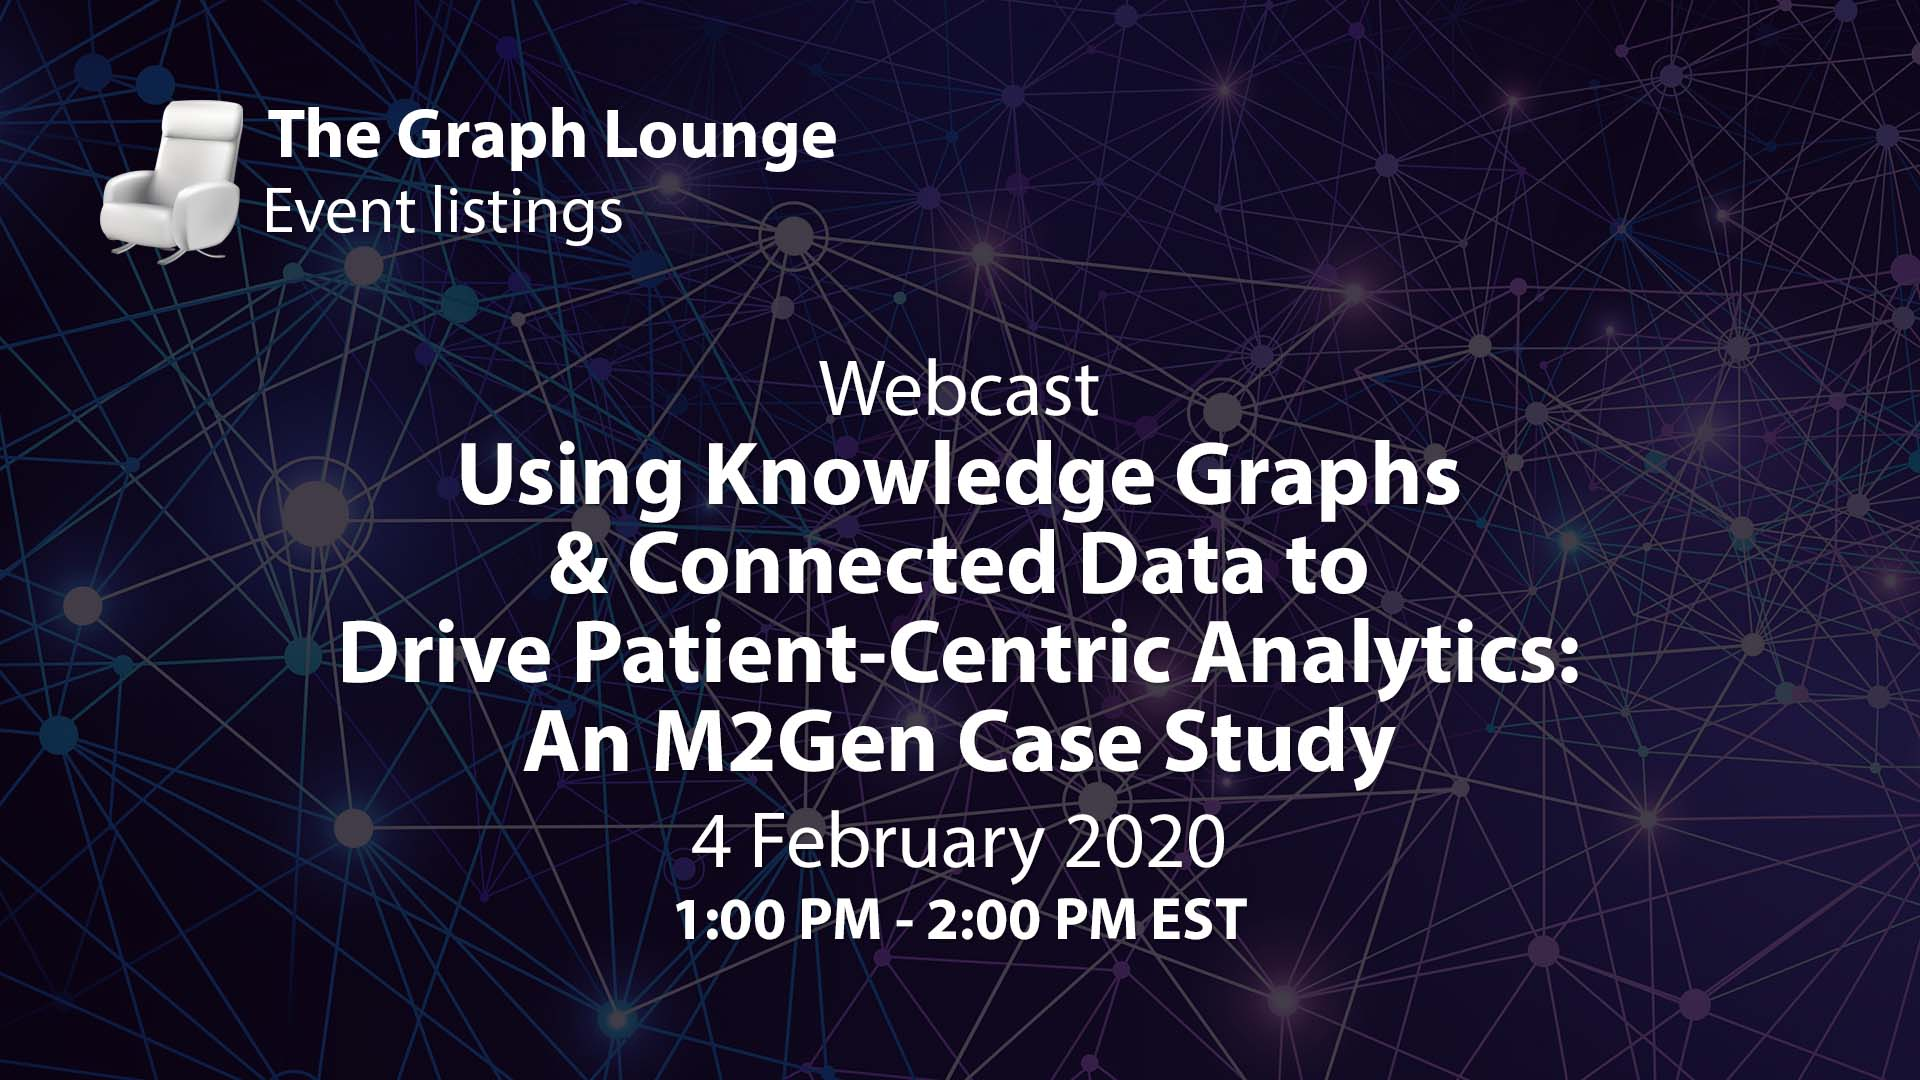 Using Knowledge Graphs and Connected Data to Drive Patient-Centric Analytics: An M2Gen Case Study